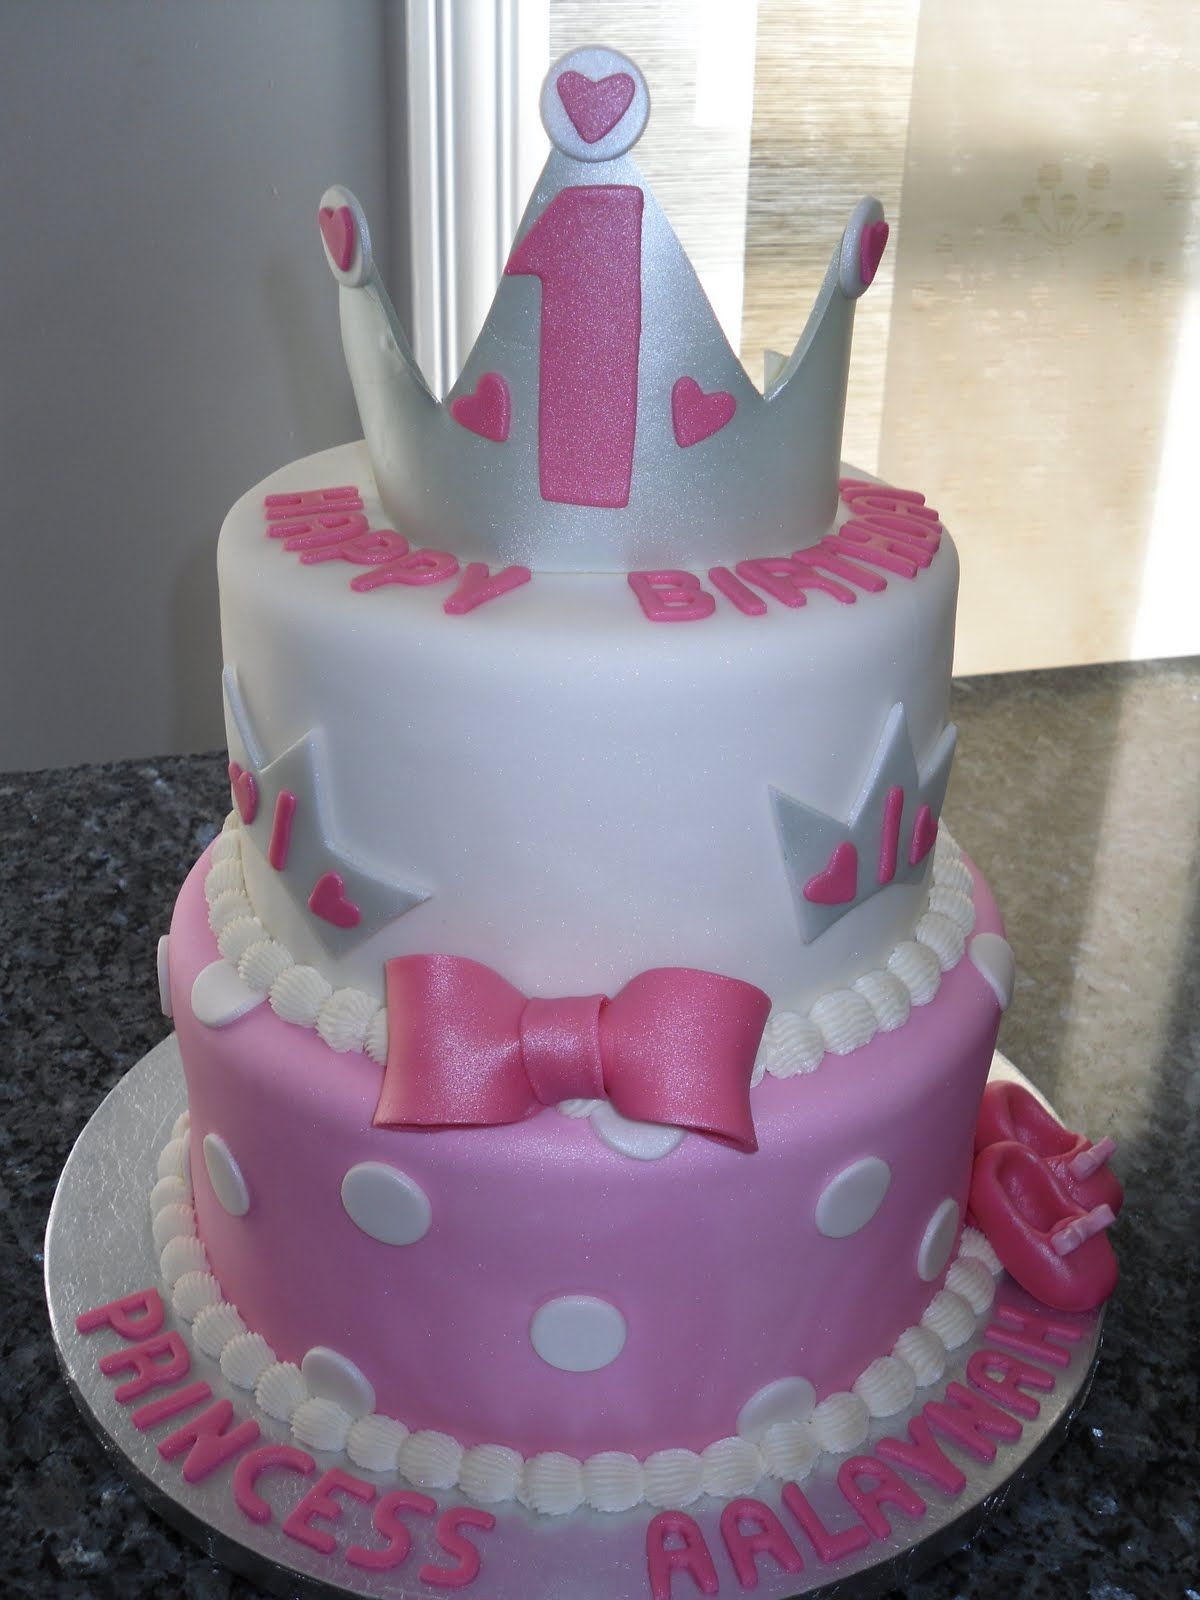 Birthday Cake For 1 Year Old 3 Girls Pictures Princess Cakes Two Very